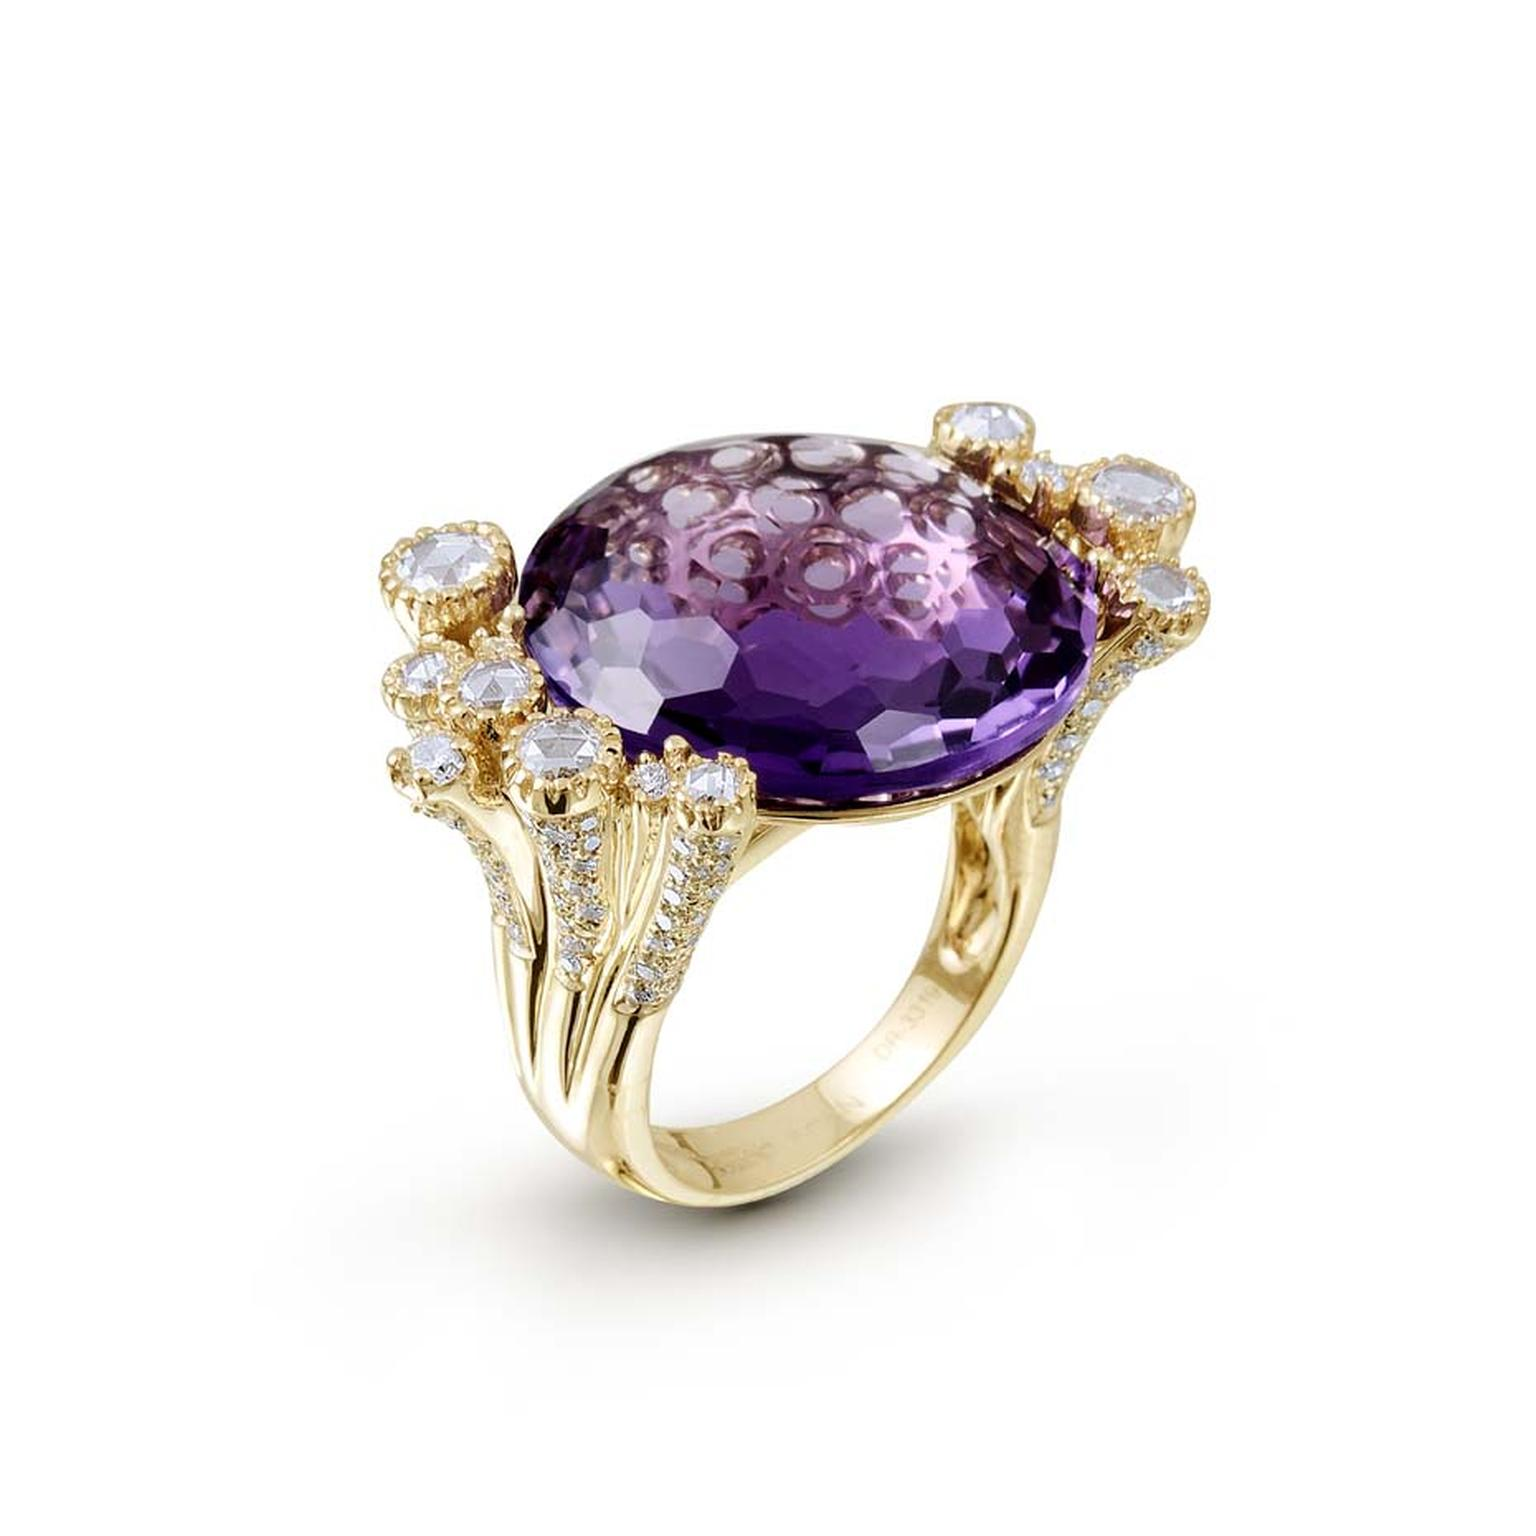 Farah Khan Crow ring with a central amethyst surrounded by diamonds, rubies and emeralds, set in rose gold